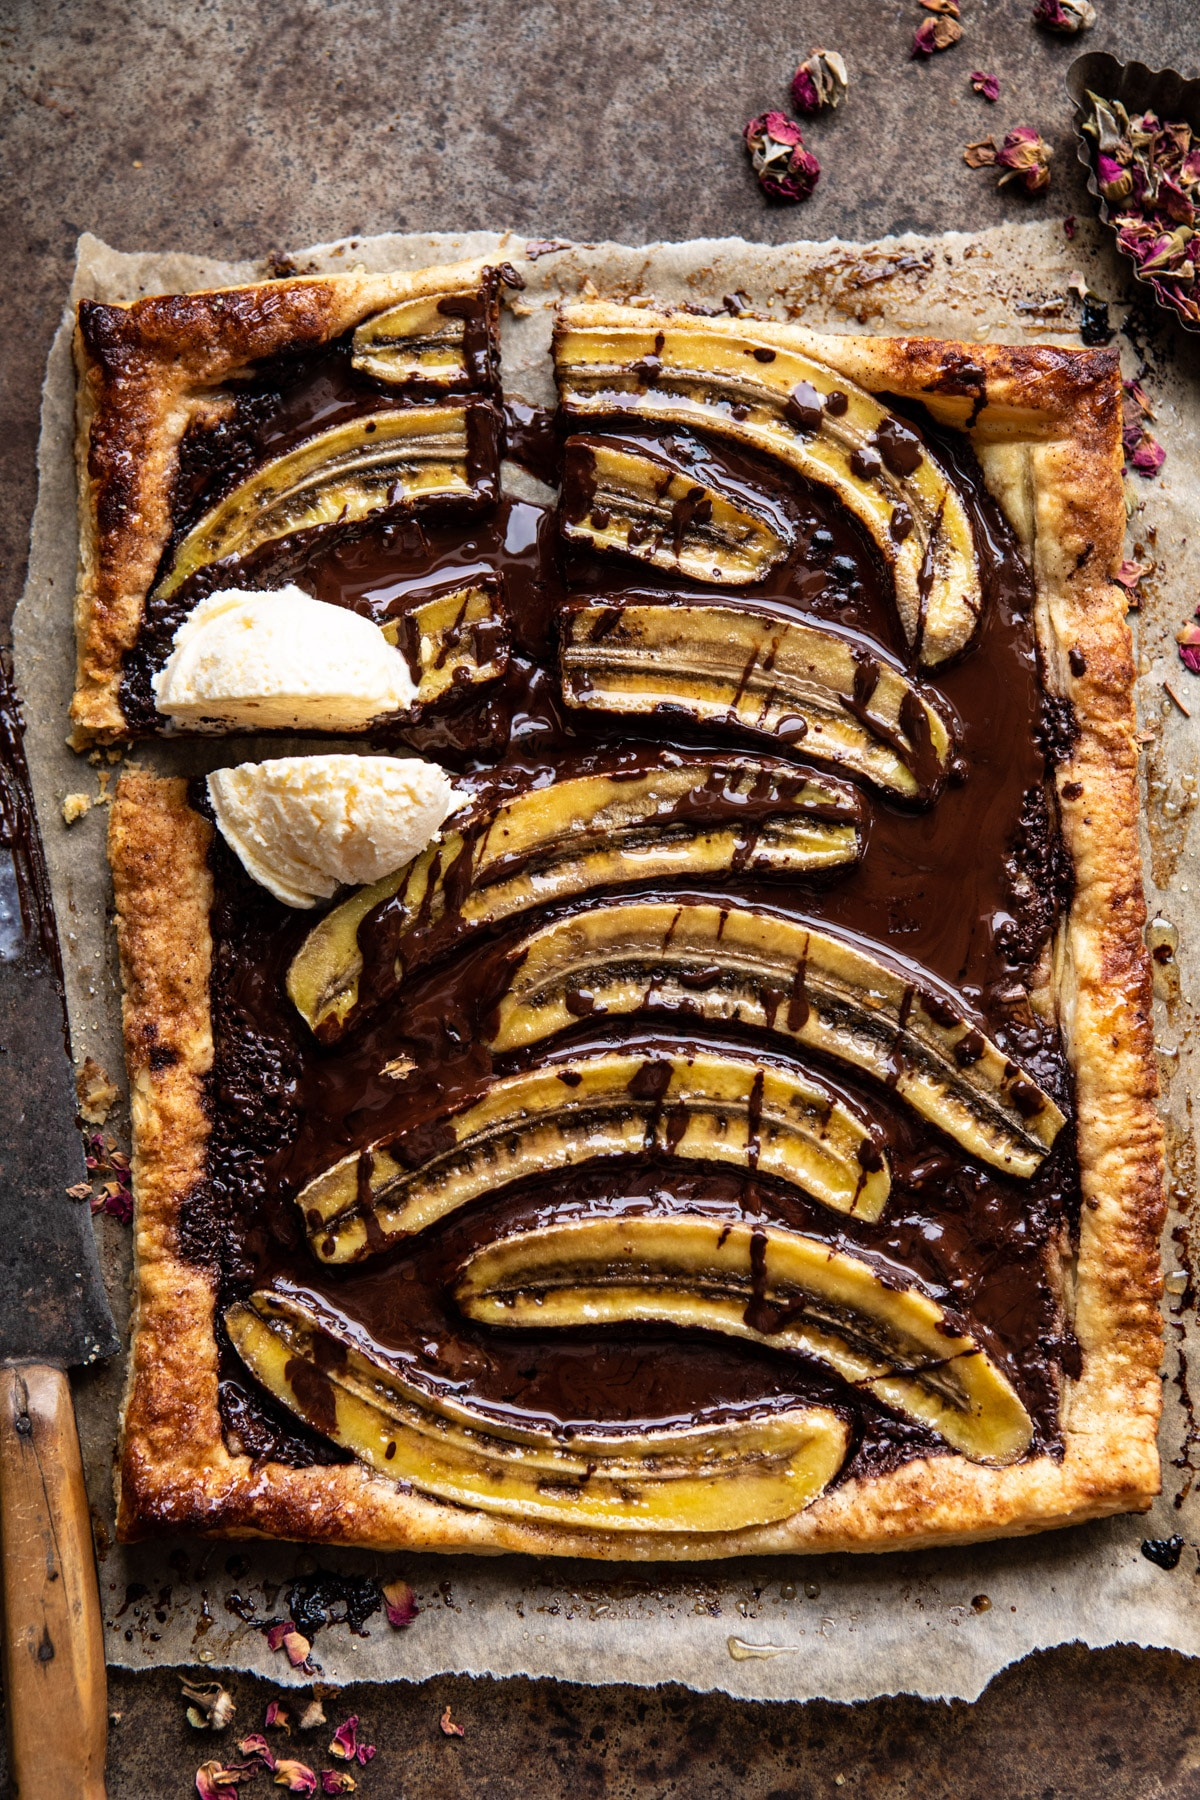 Warm Chocolate Banana Galette